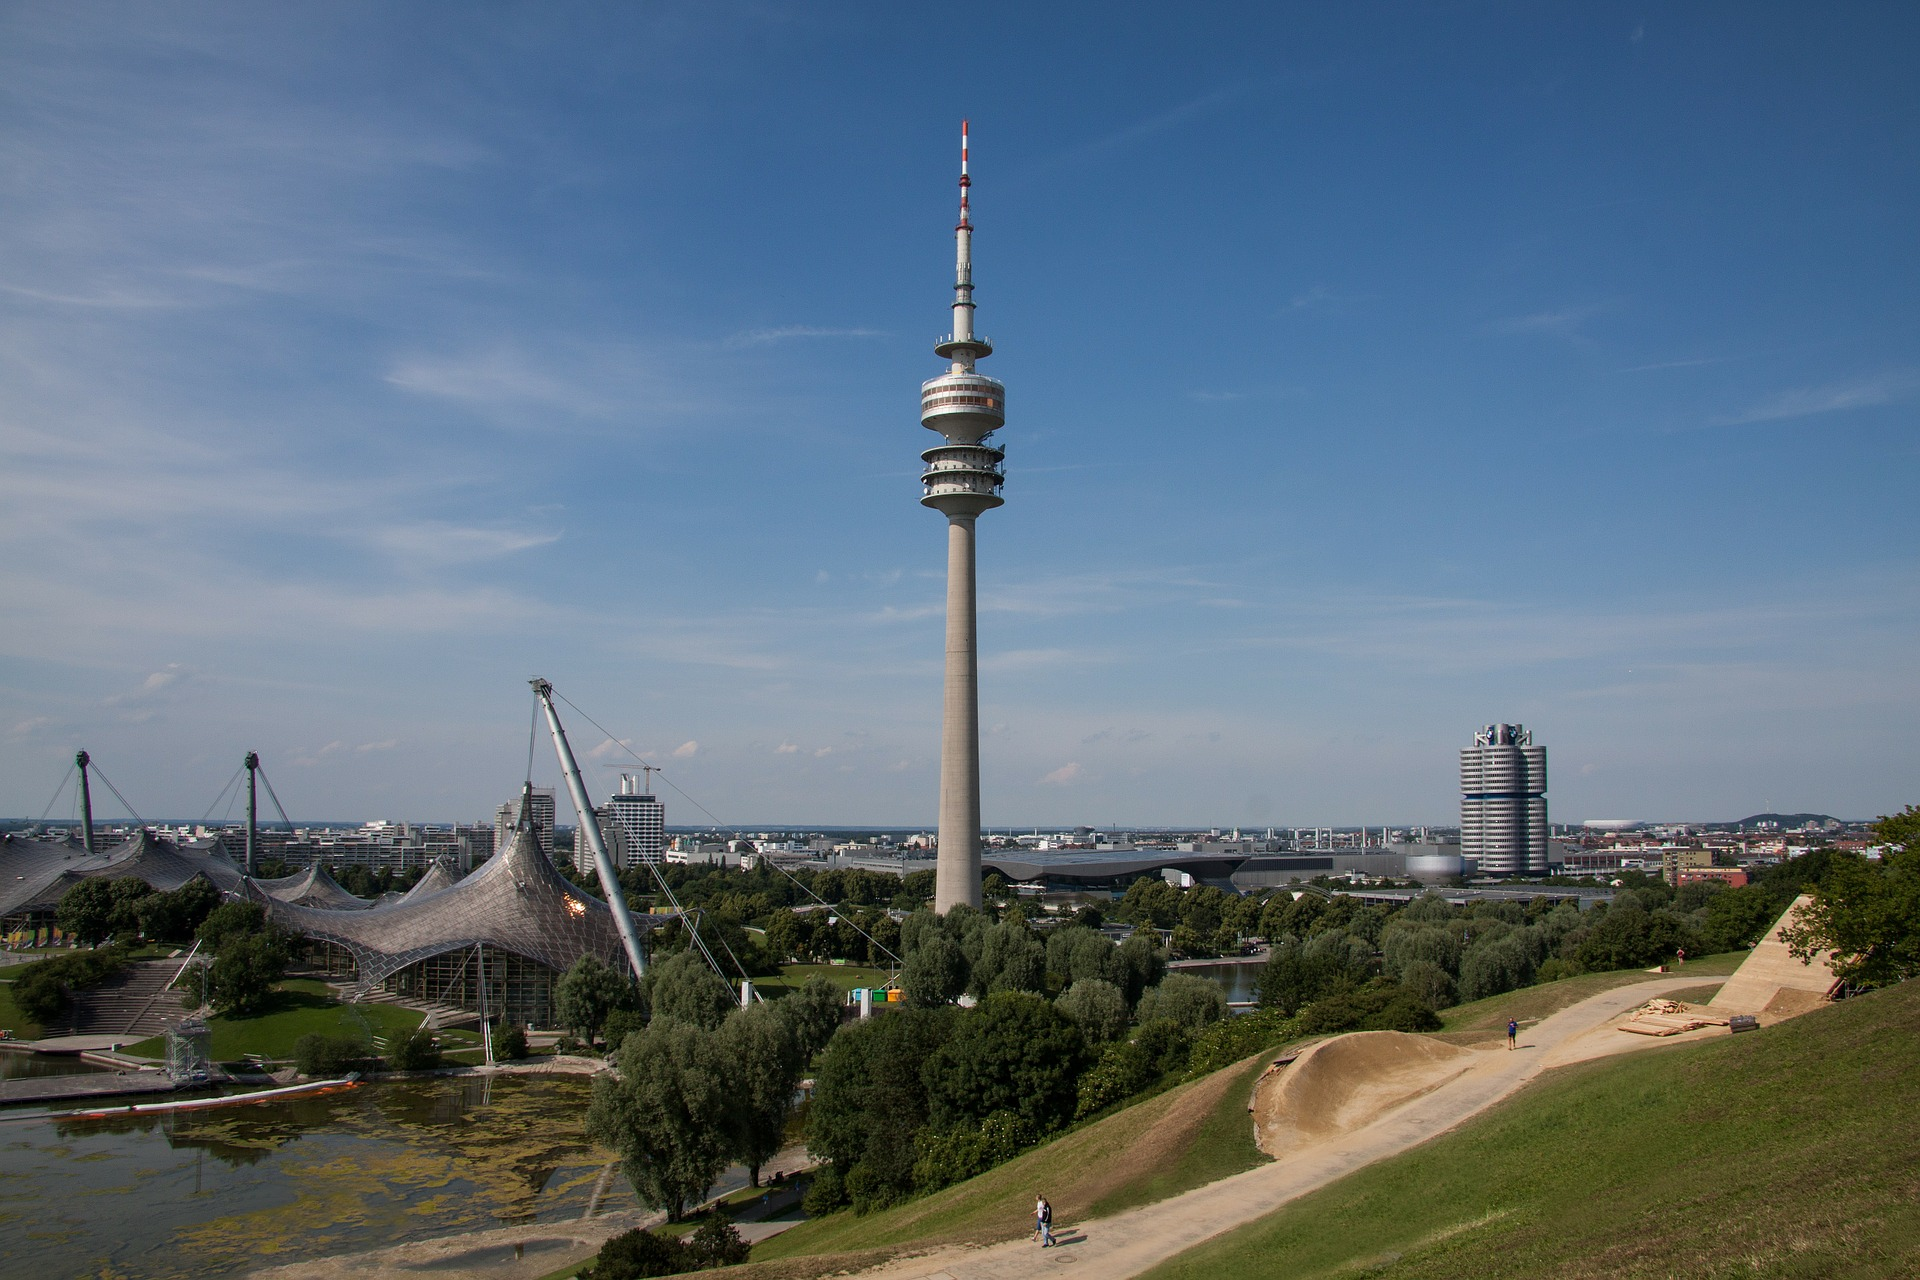 The Olympiapark München in Munich, Germany